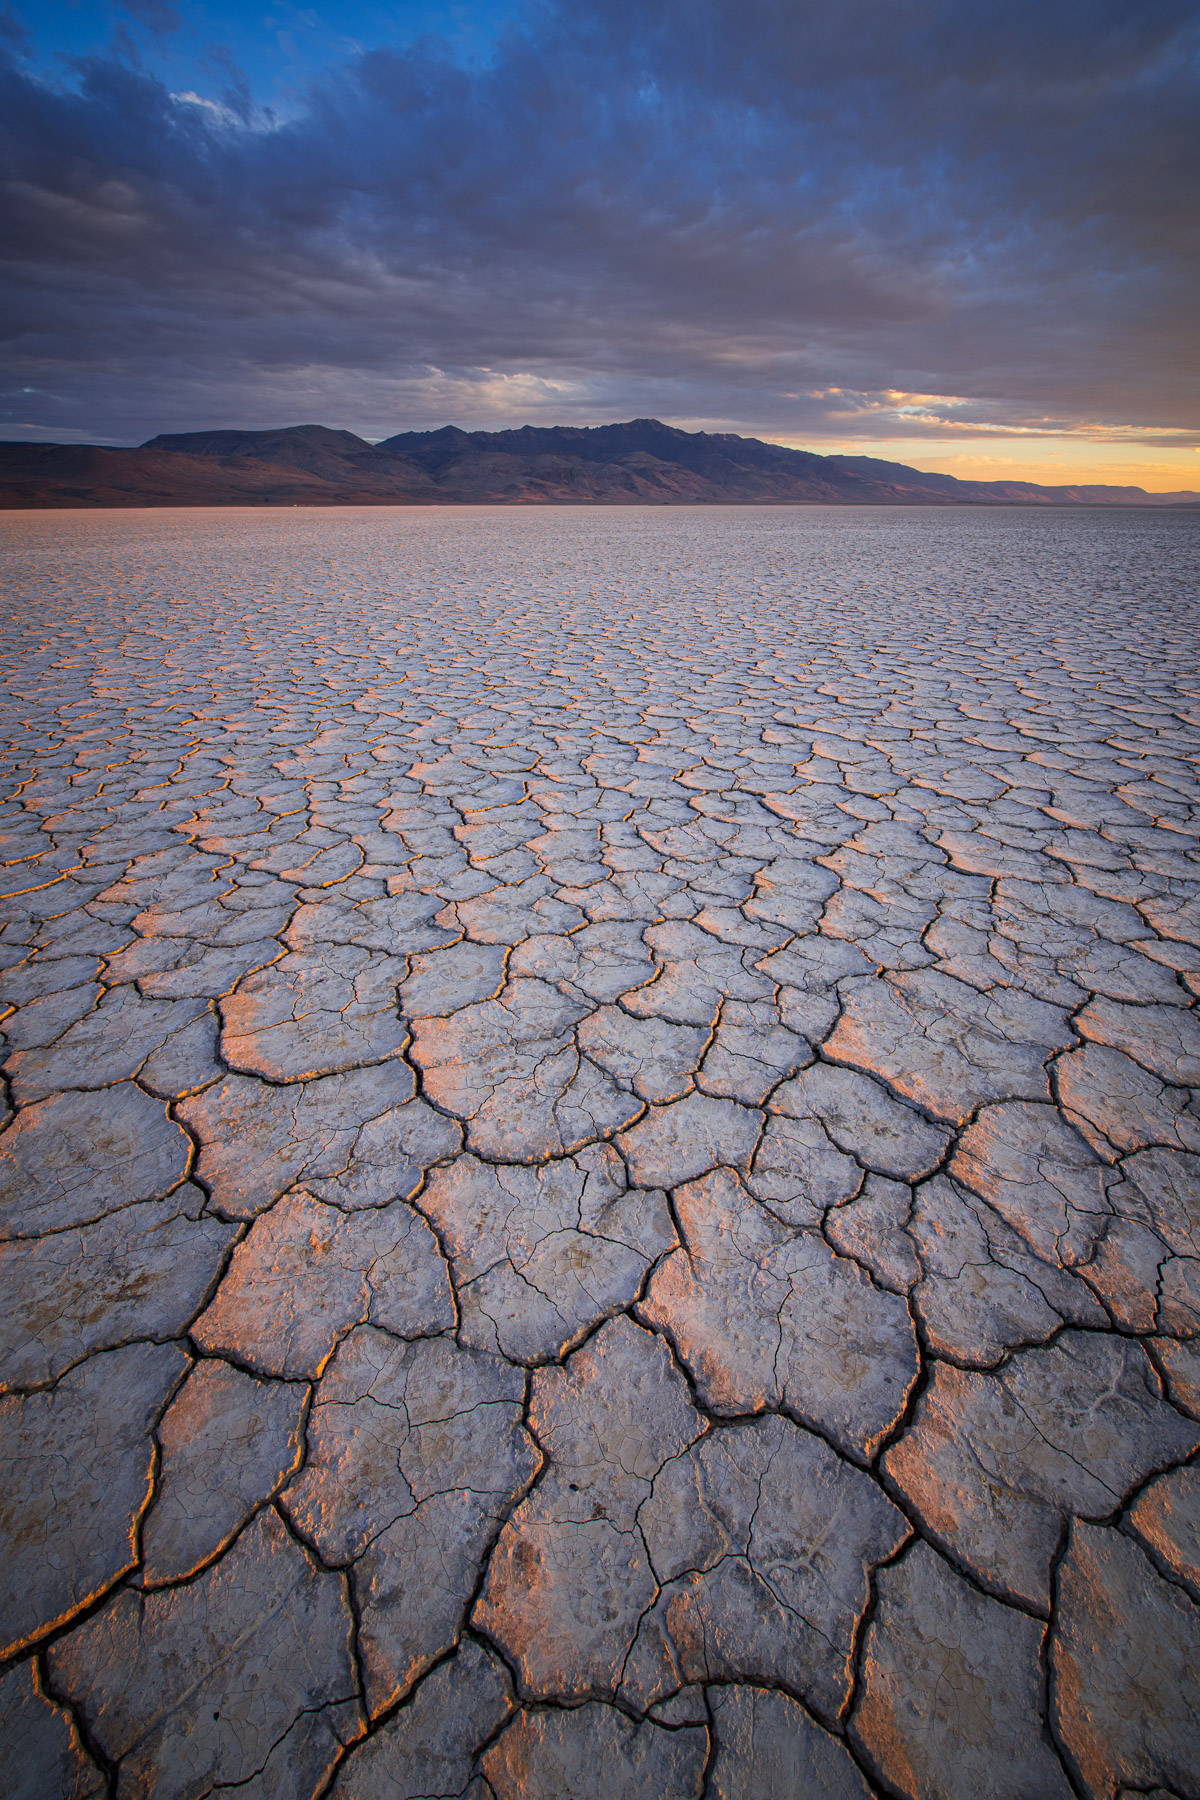 Mud cracks below Steens Mountain from the Alvord Desert, Oregon